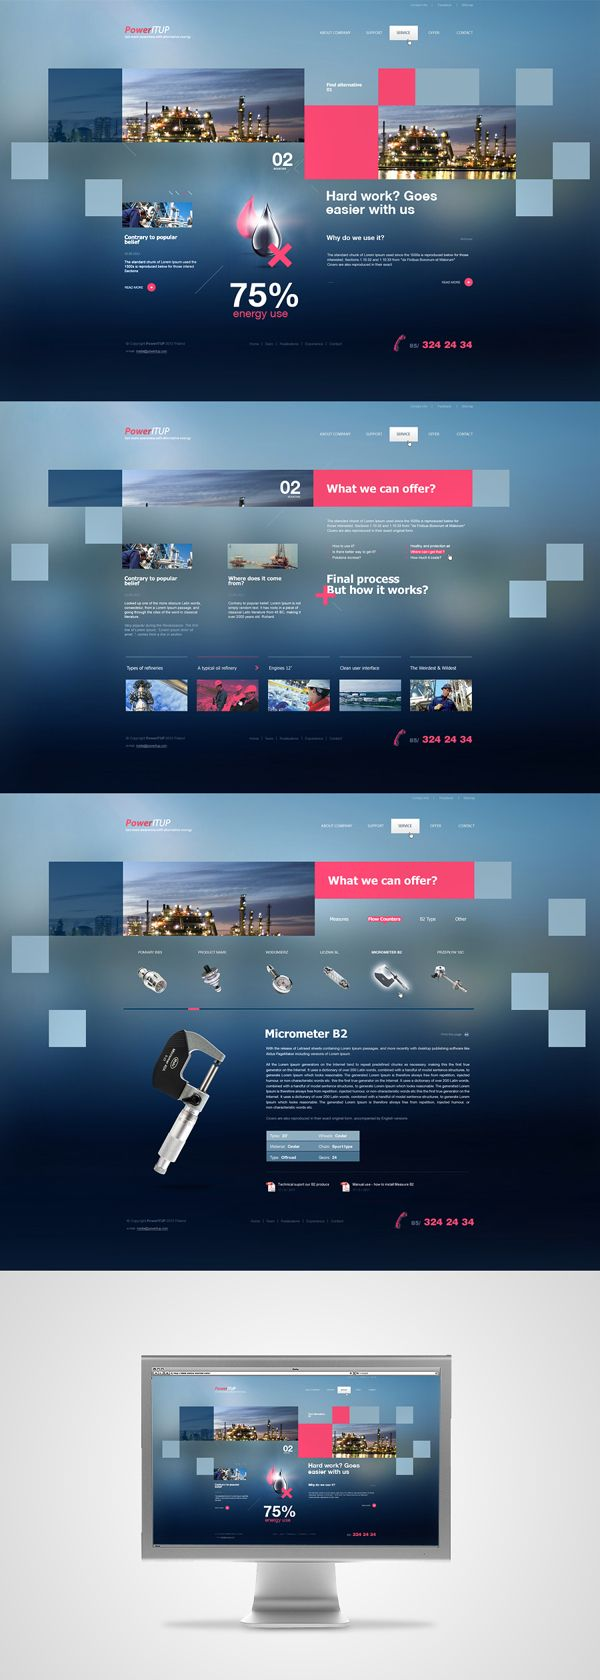 Blue web design